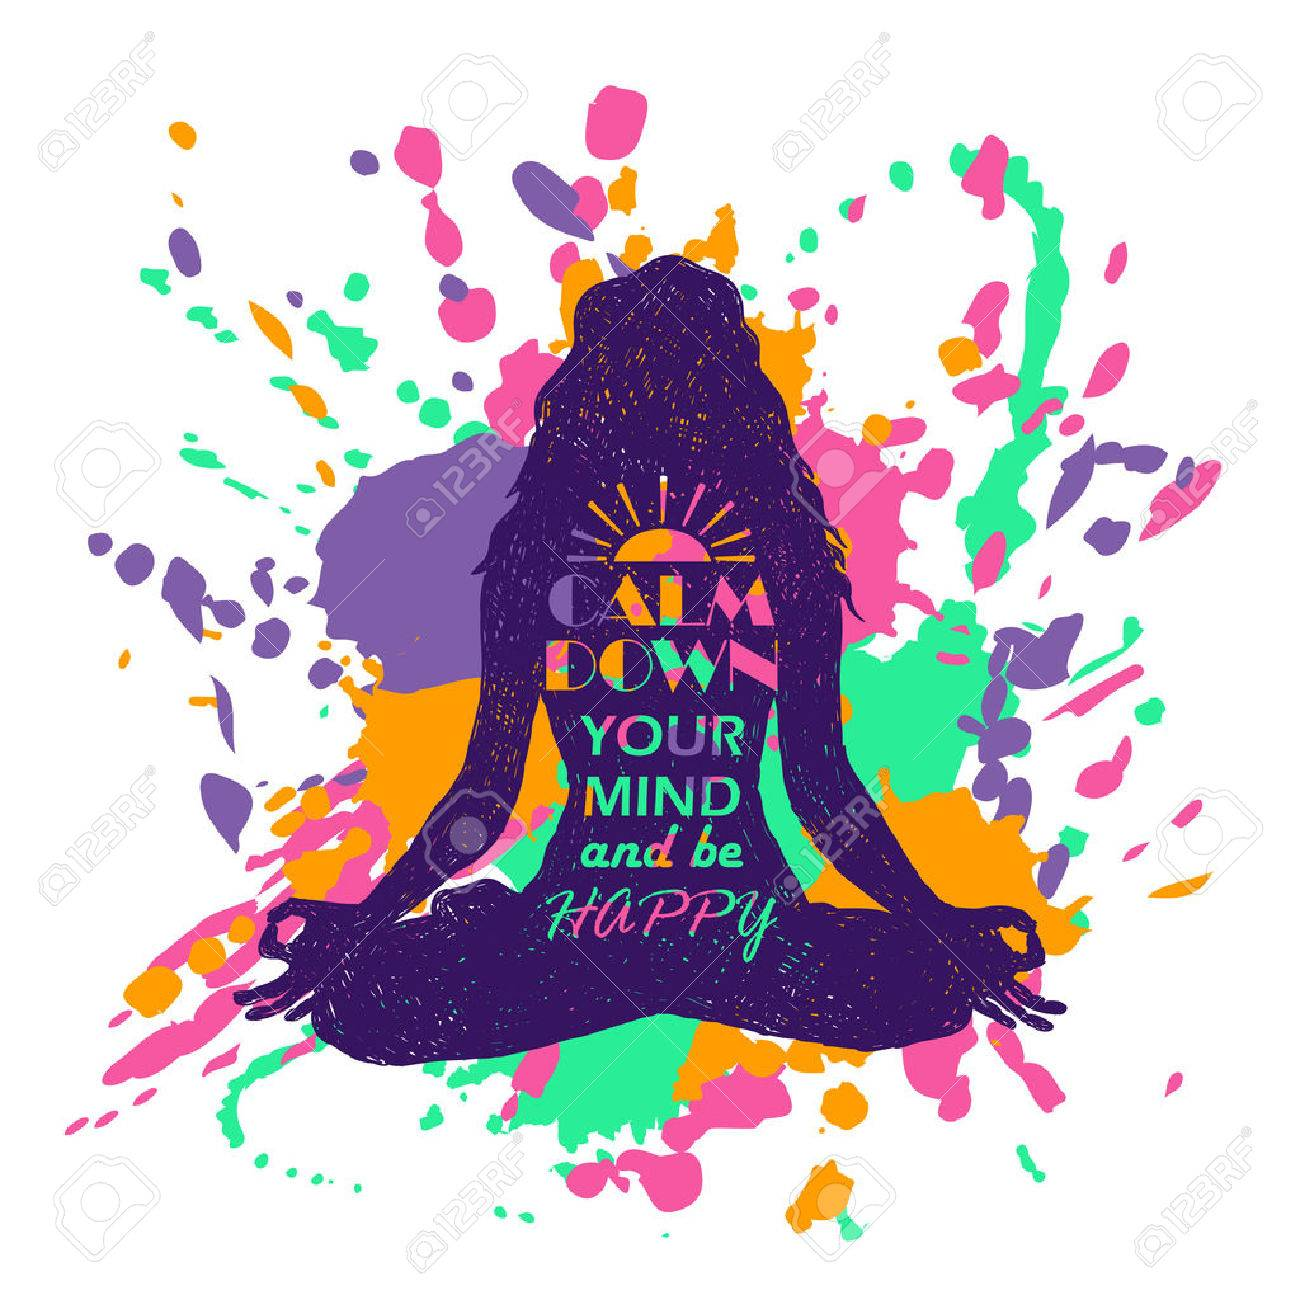 Isolated woman silhouette sitting in lotus pose of yoga over abstract colorful grunge splash background. Creative typography poster with text inside - calm down your mind and be happy. - 60154212